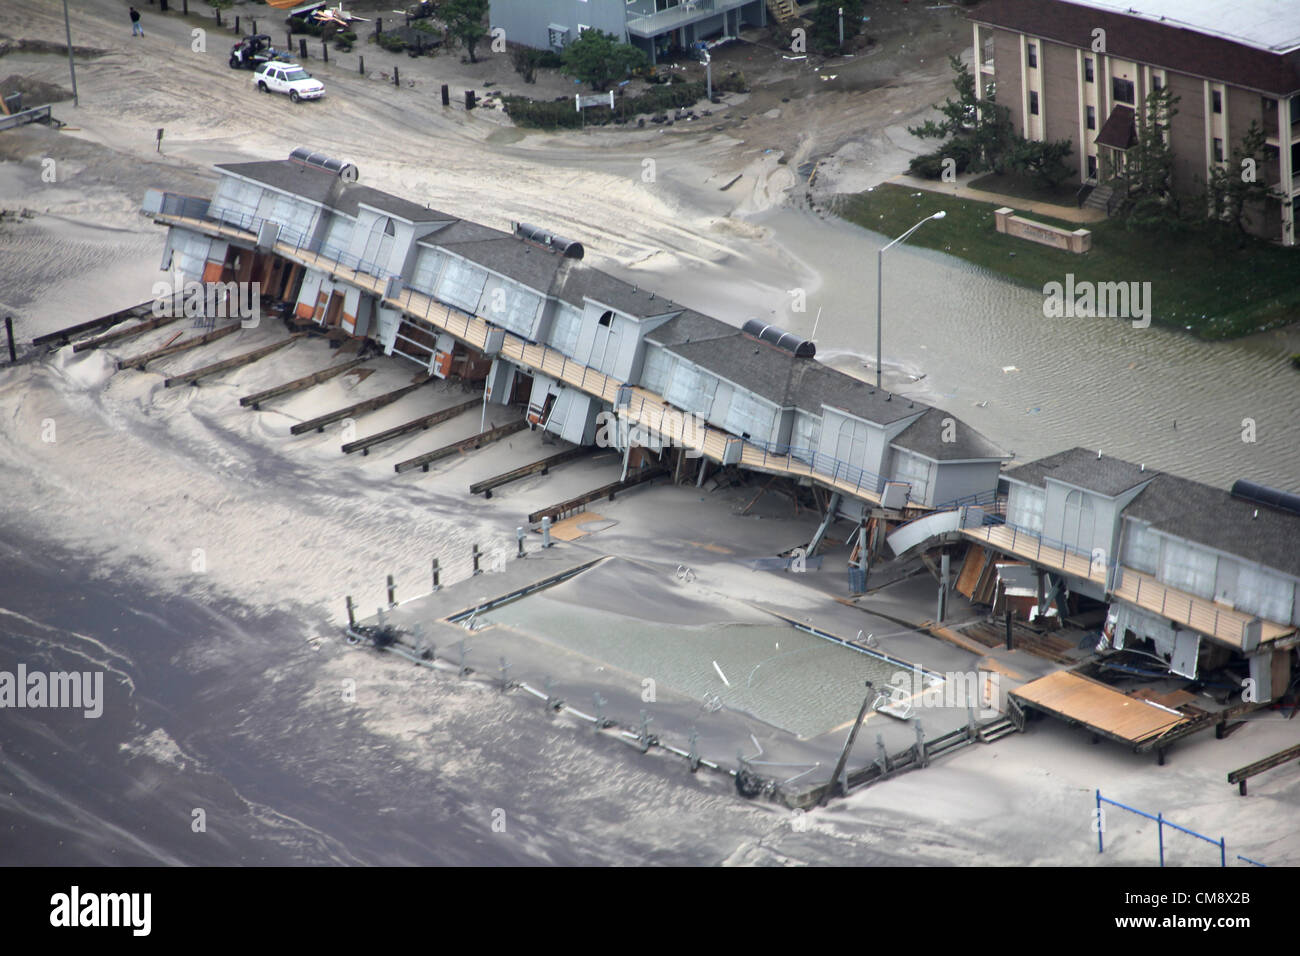 New Jersey, Usa. 30th October 2012. Aerial view of property damage along the New Jersey coast caused by Hurricane - Stock Image